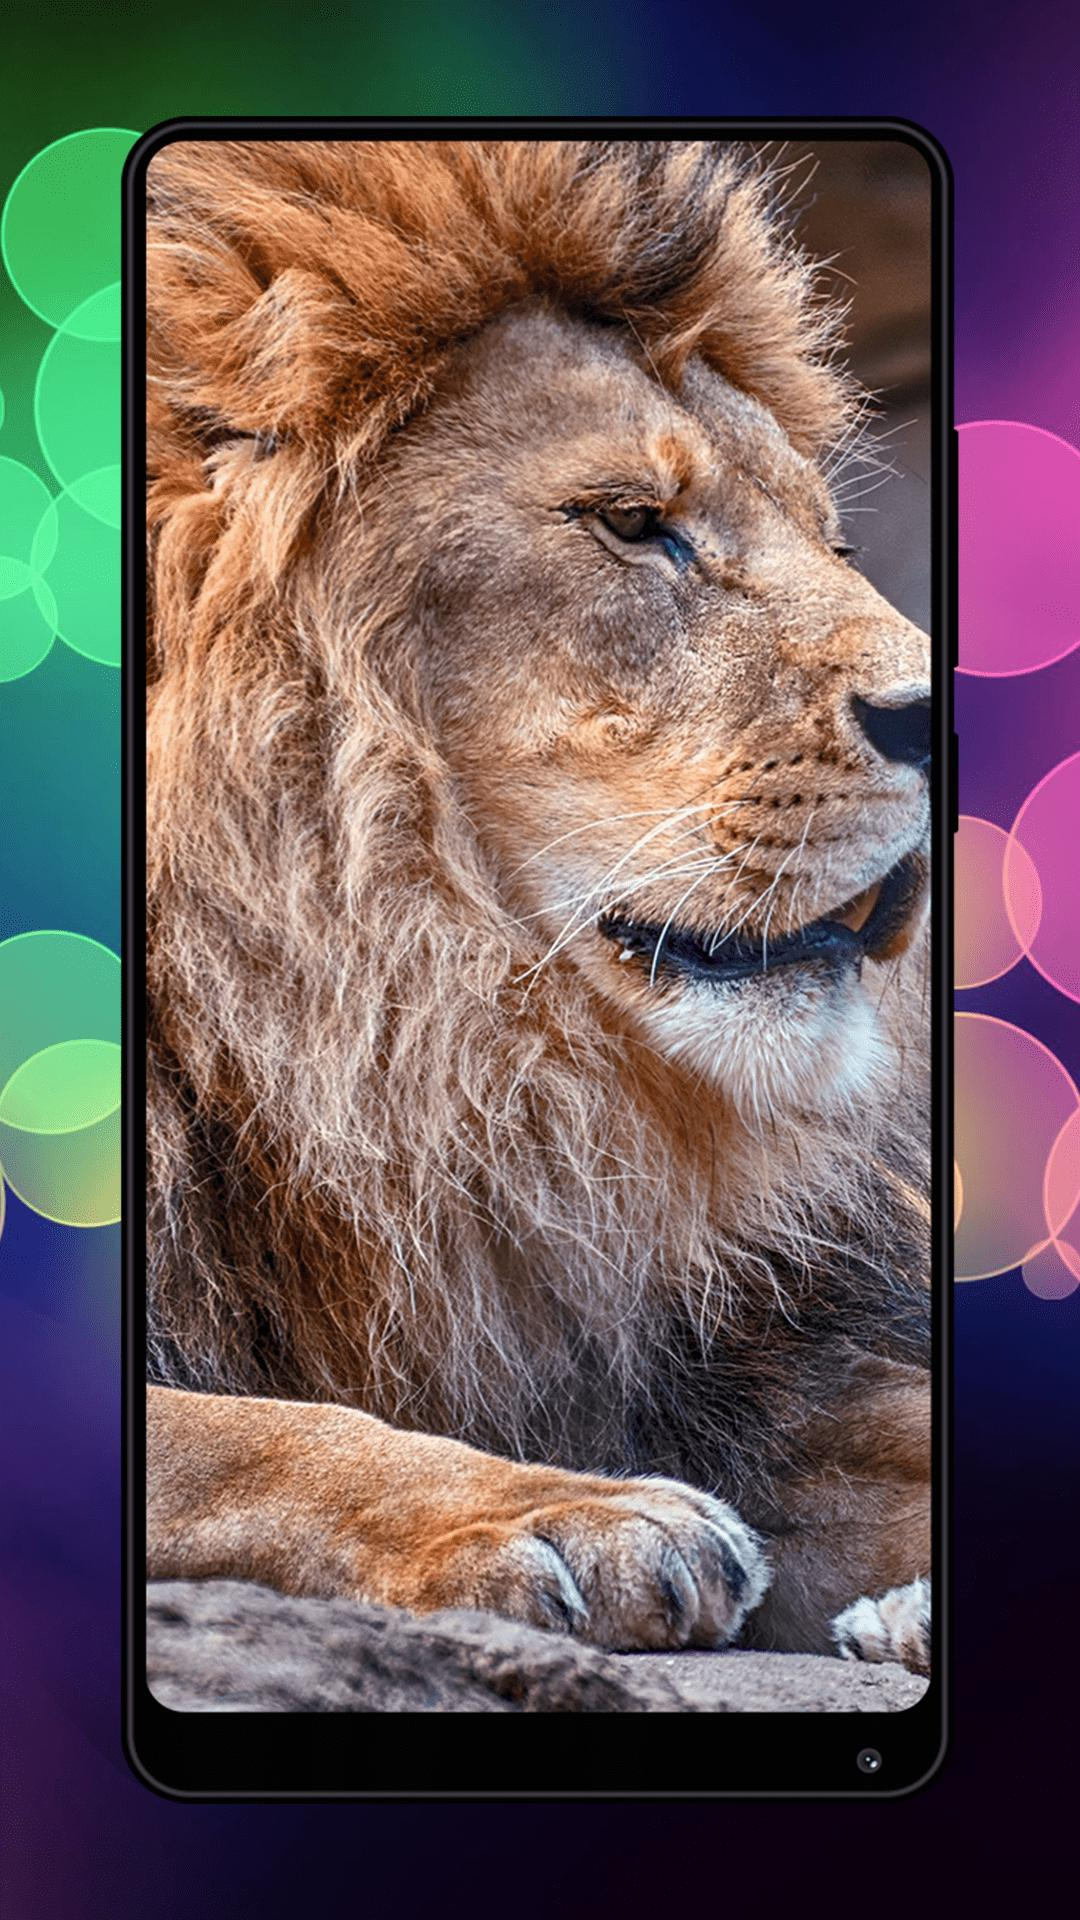 Animal Wallpapers 4k Ultra Hd For Android Apk Download